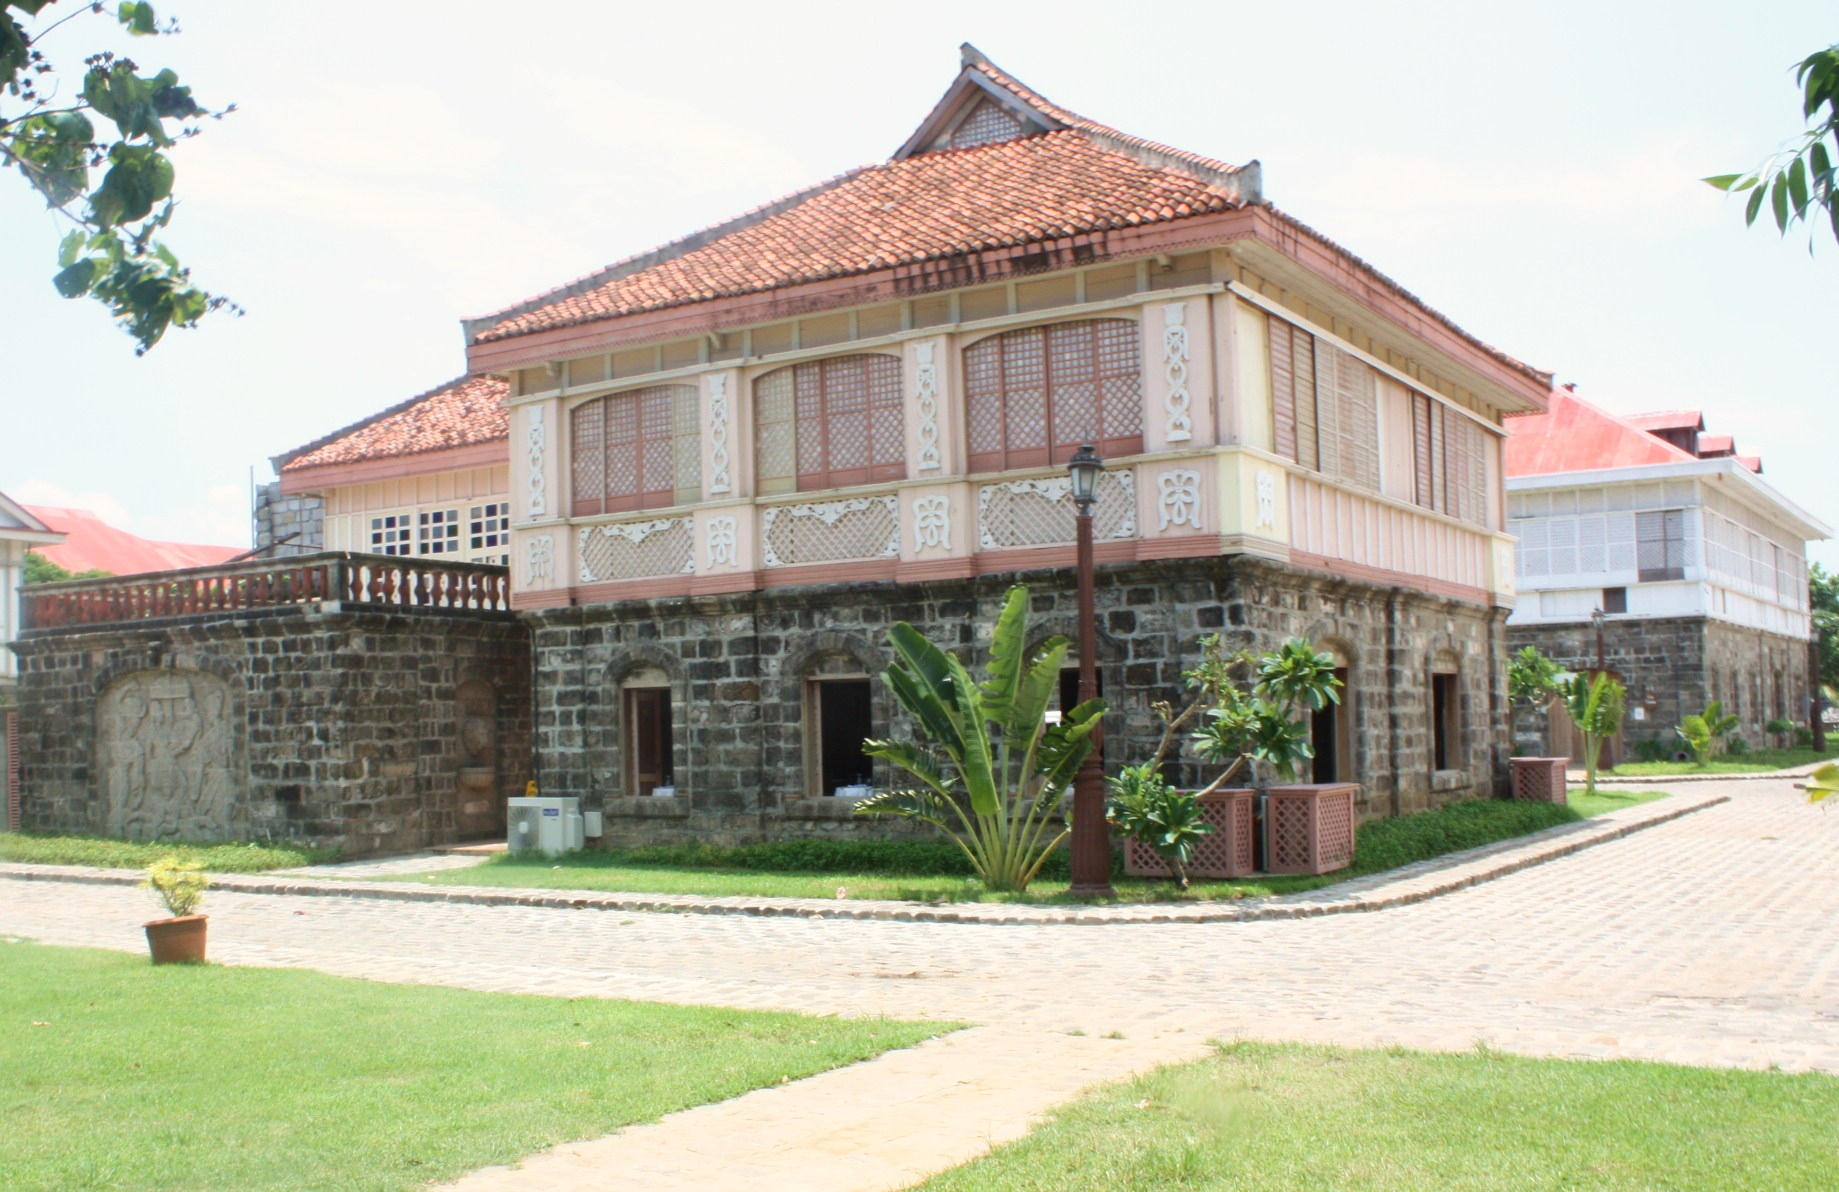 Heritage houses by the south china sea my town for Photos of traditional houses